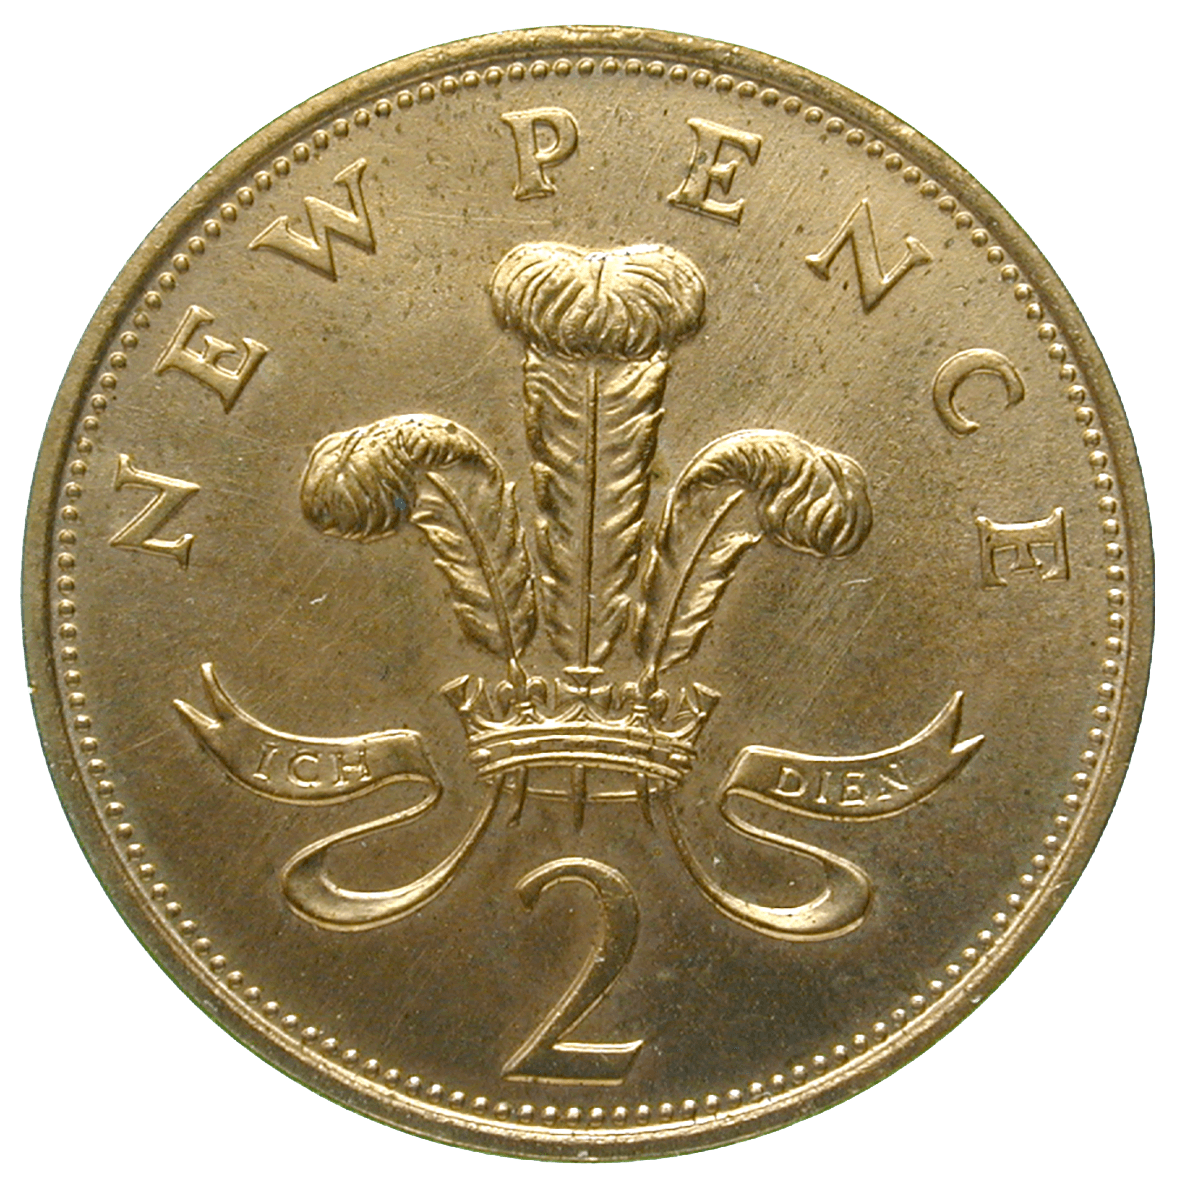 United Kingdom of Great Britain, Elizabeth II, 2 New Pence 1971 (reverse)